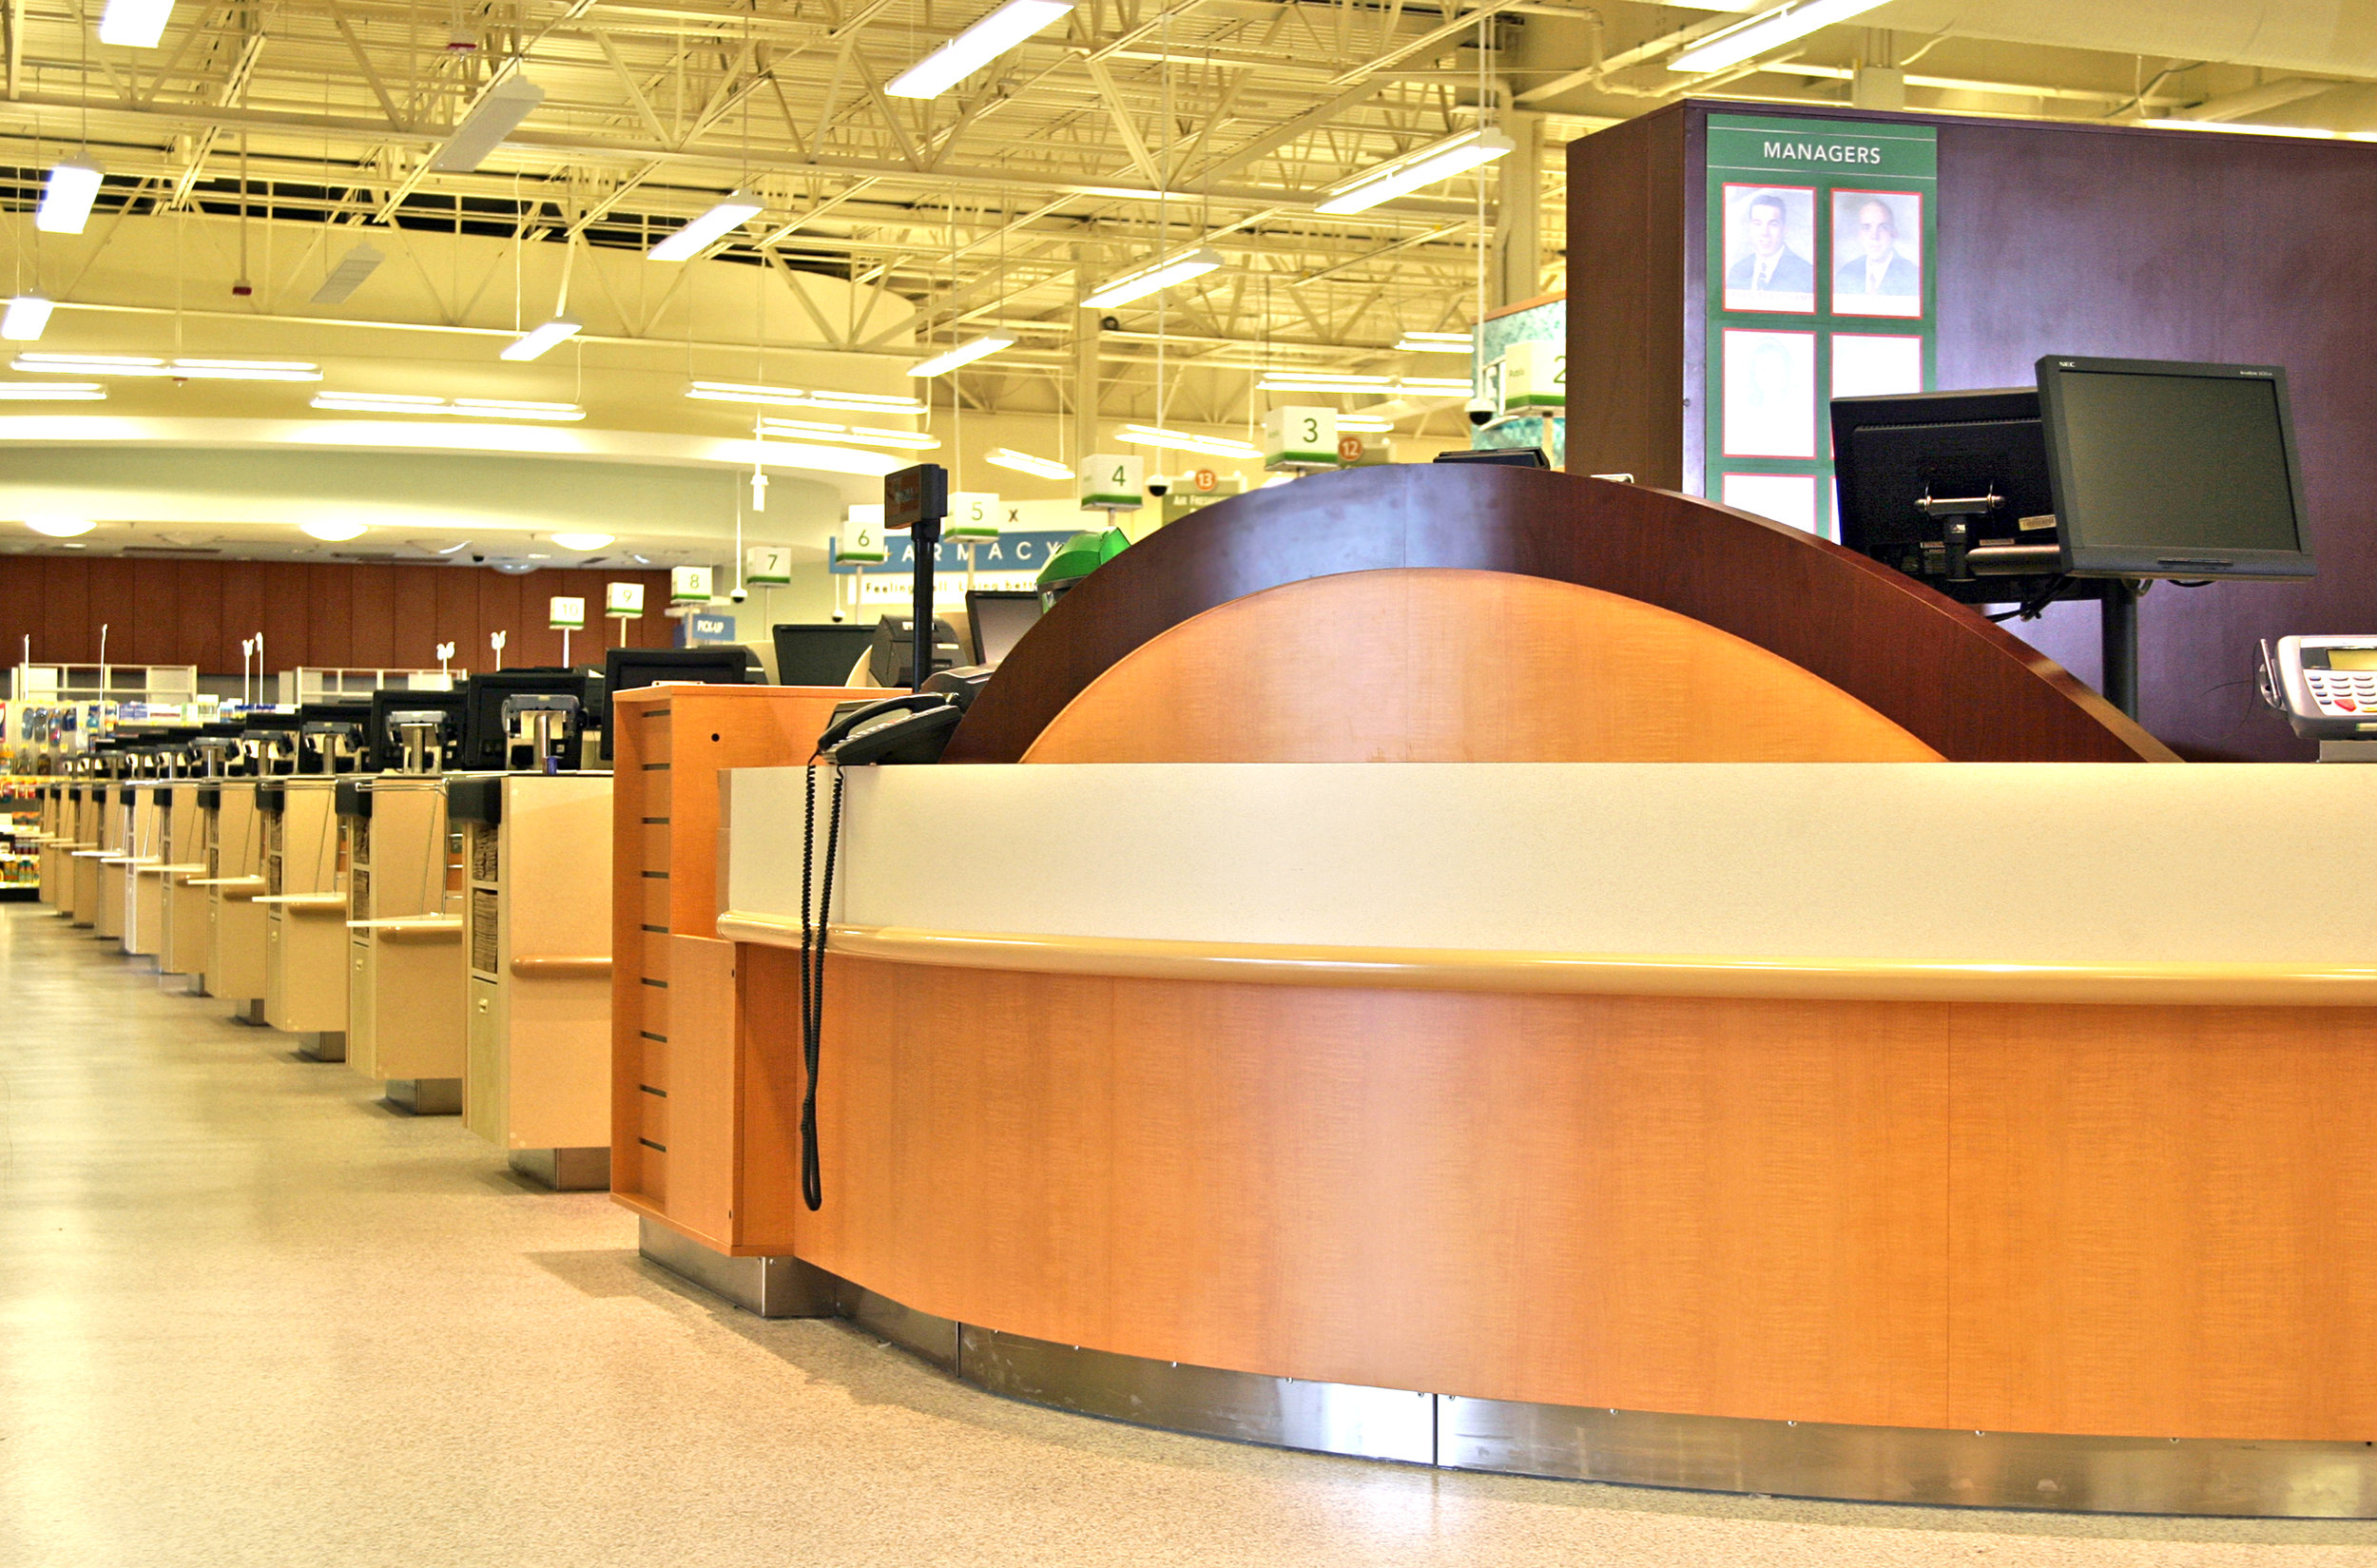 Bumpers on a customer service counter and checkstands.